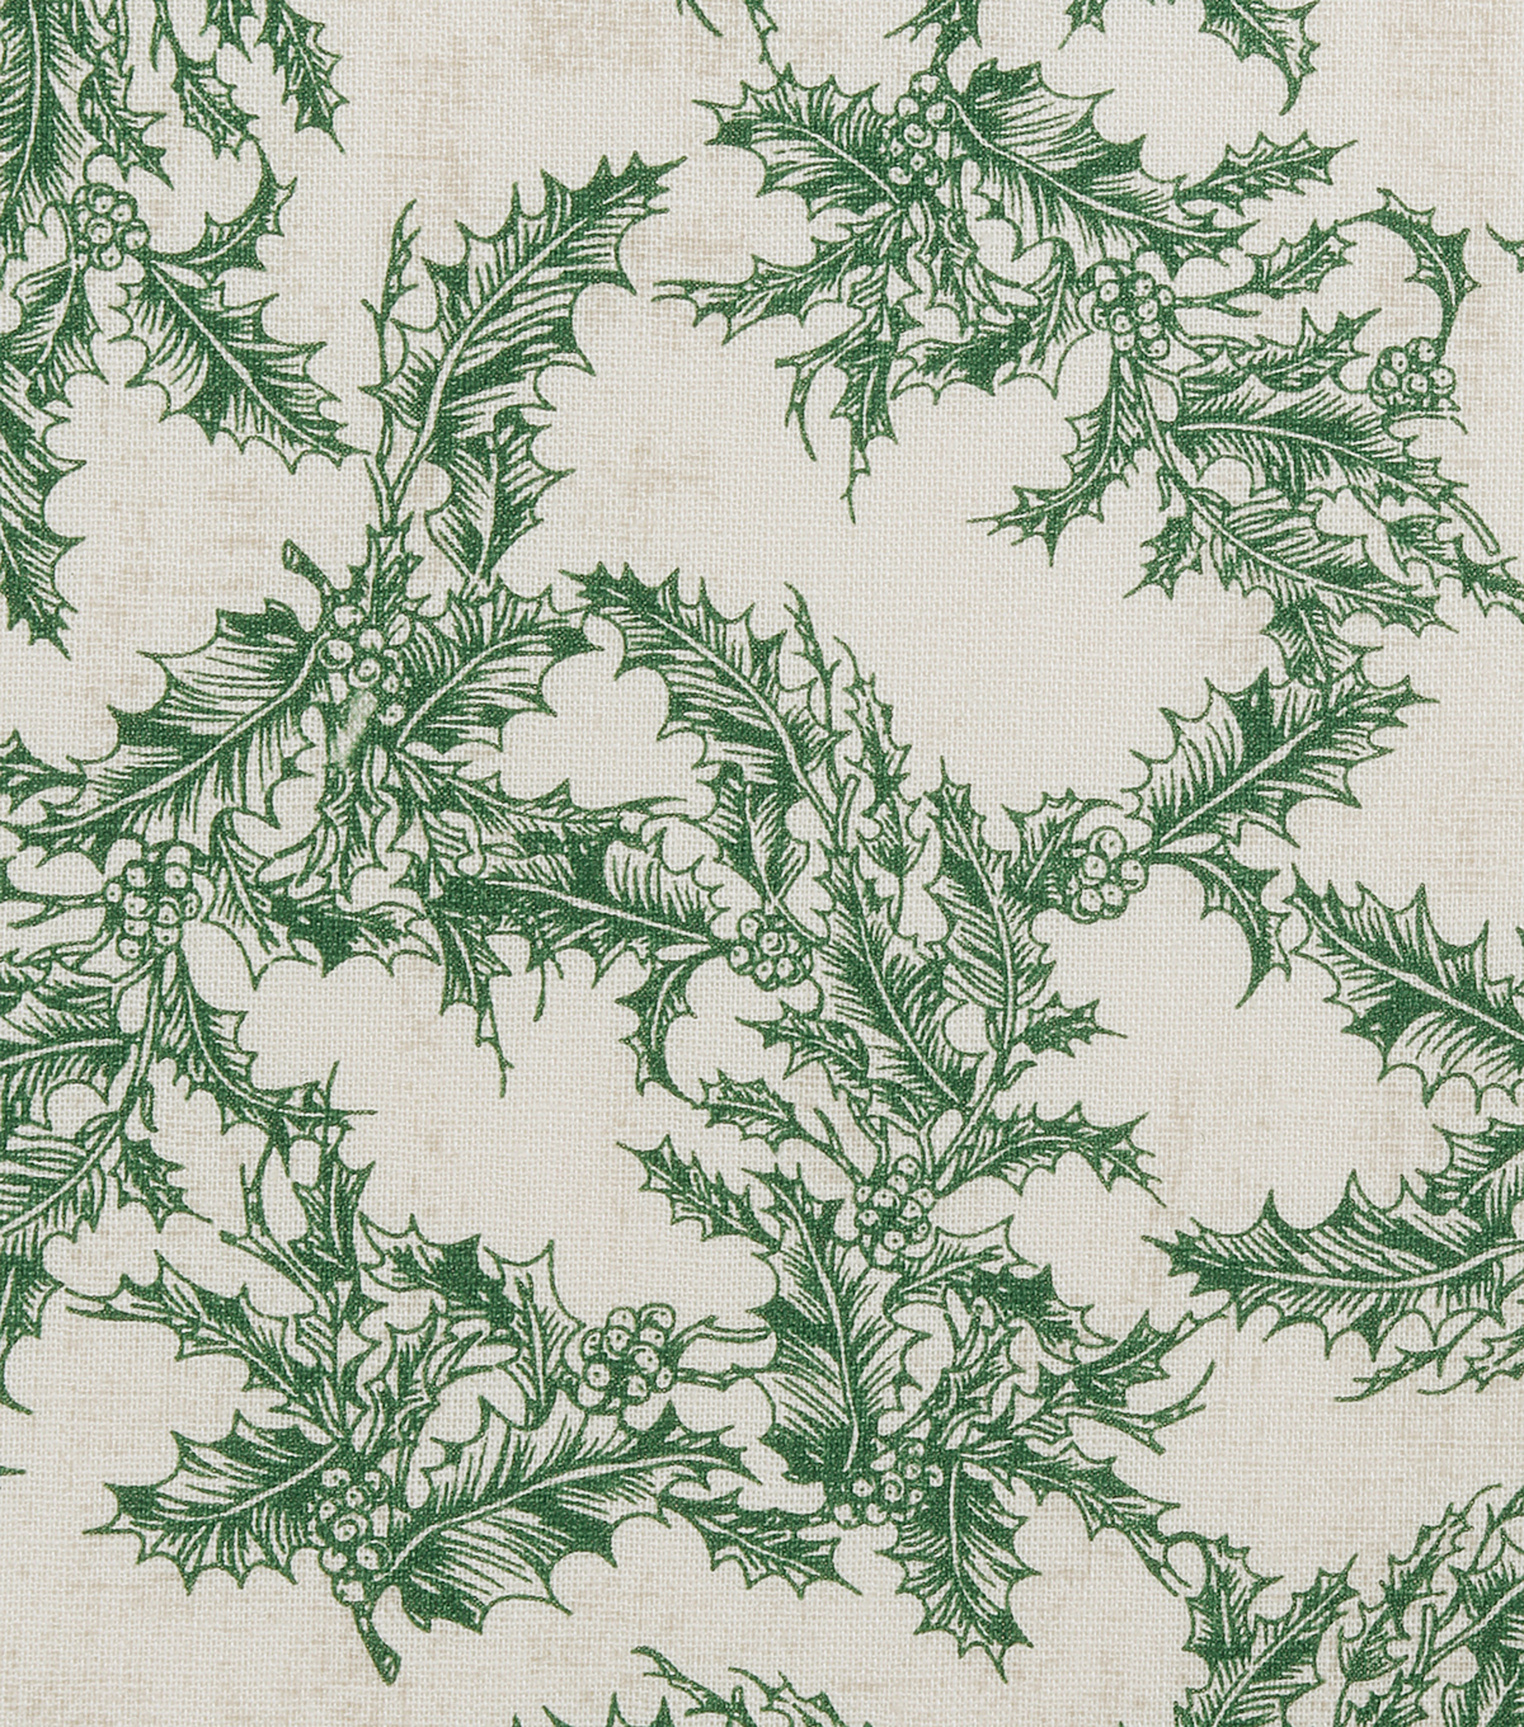 Christmas Cotton Fabric-Green Holly Leaves